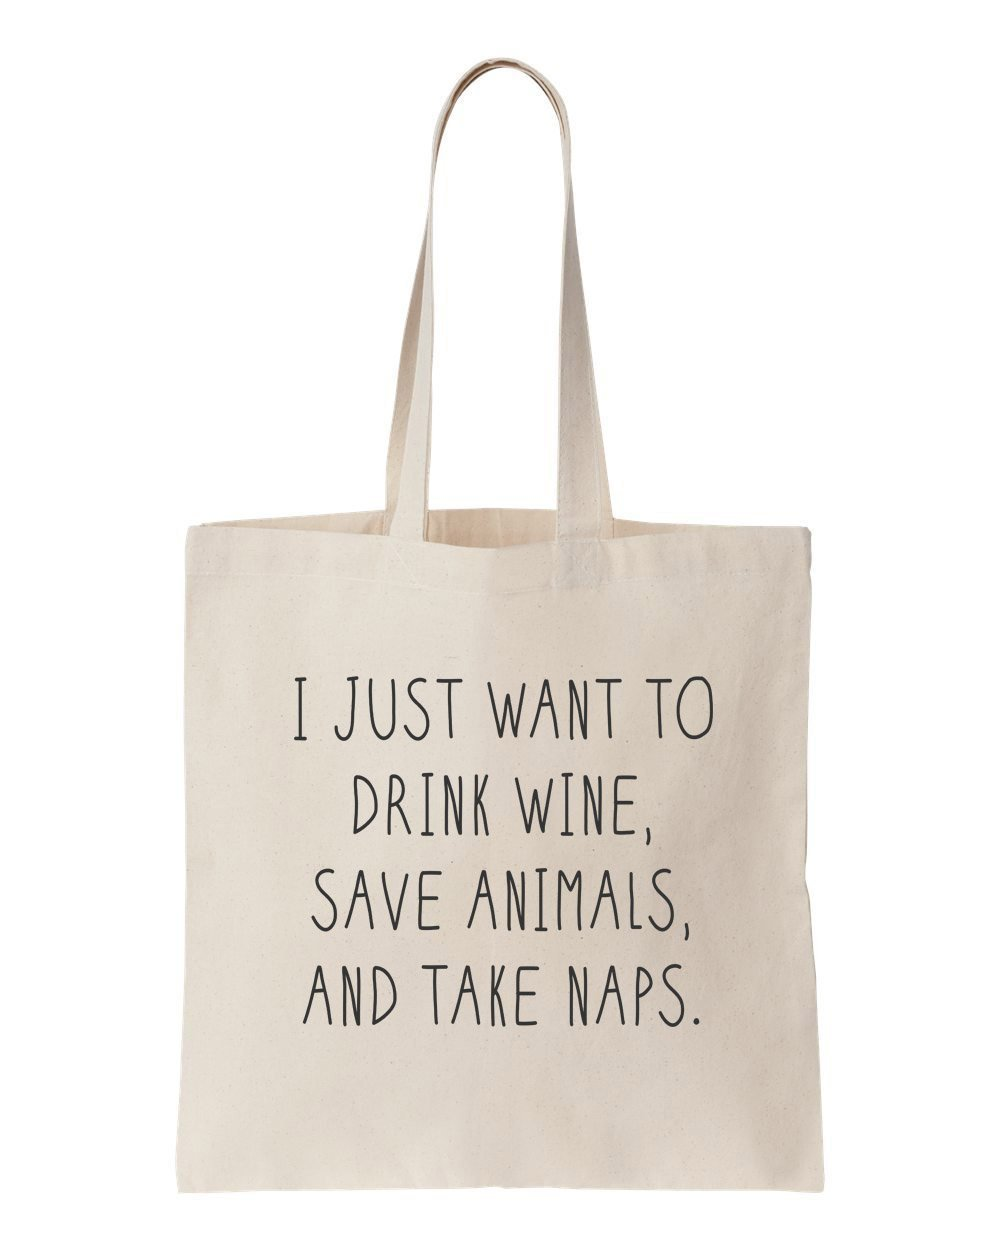 Sanfran - I Just Want To Drink Wine Save Animals Naps Shoulder Canvas Tote  Bag - Black: Amazon.co.uk: Luggage